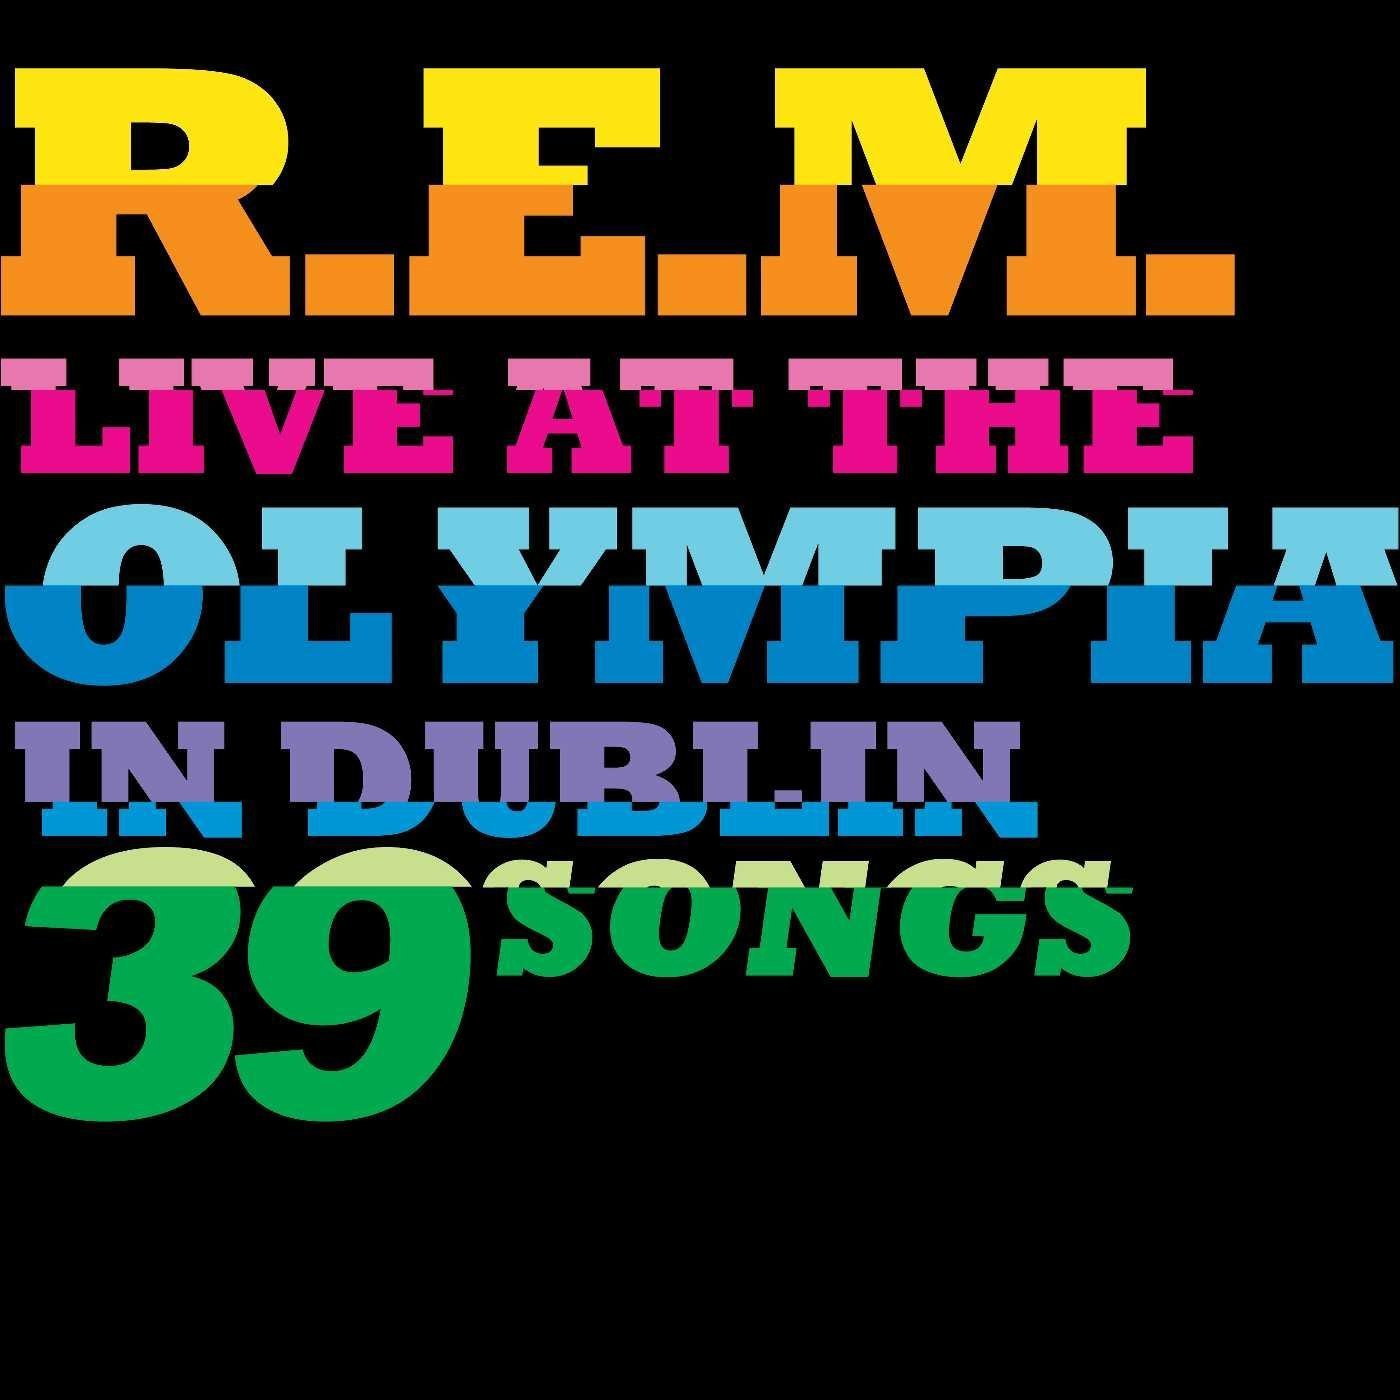 R.E.M. - CD Live At The Olympia In Dublin 39 Songs